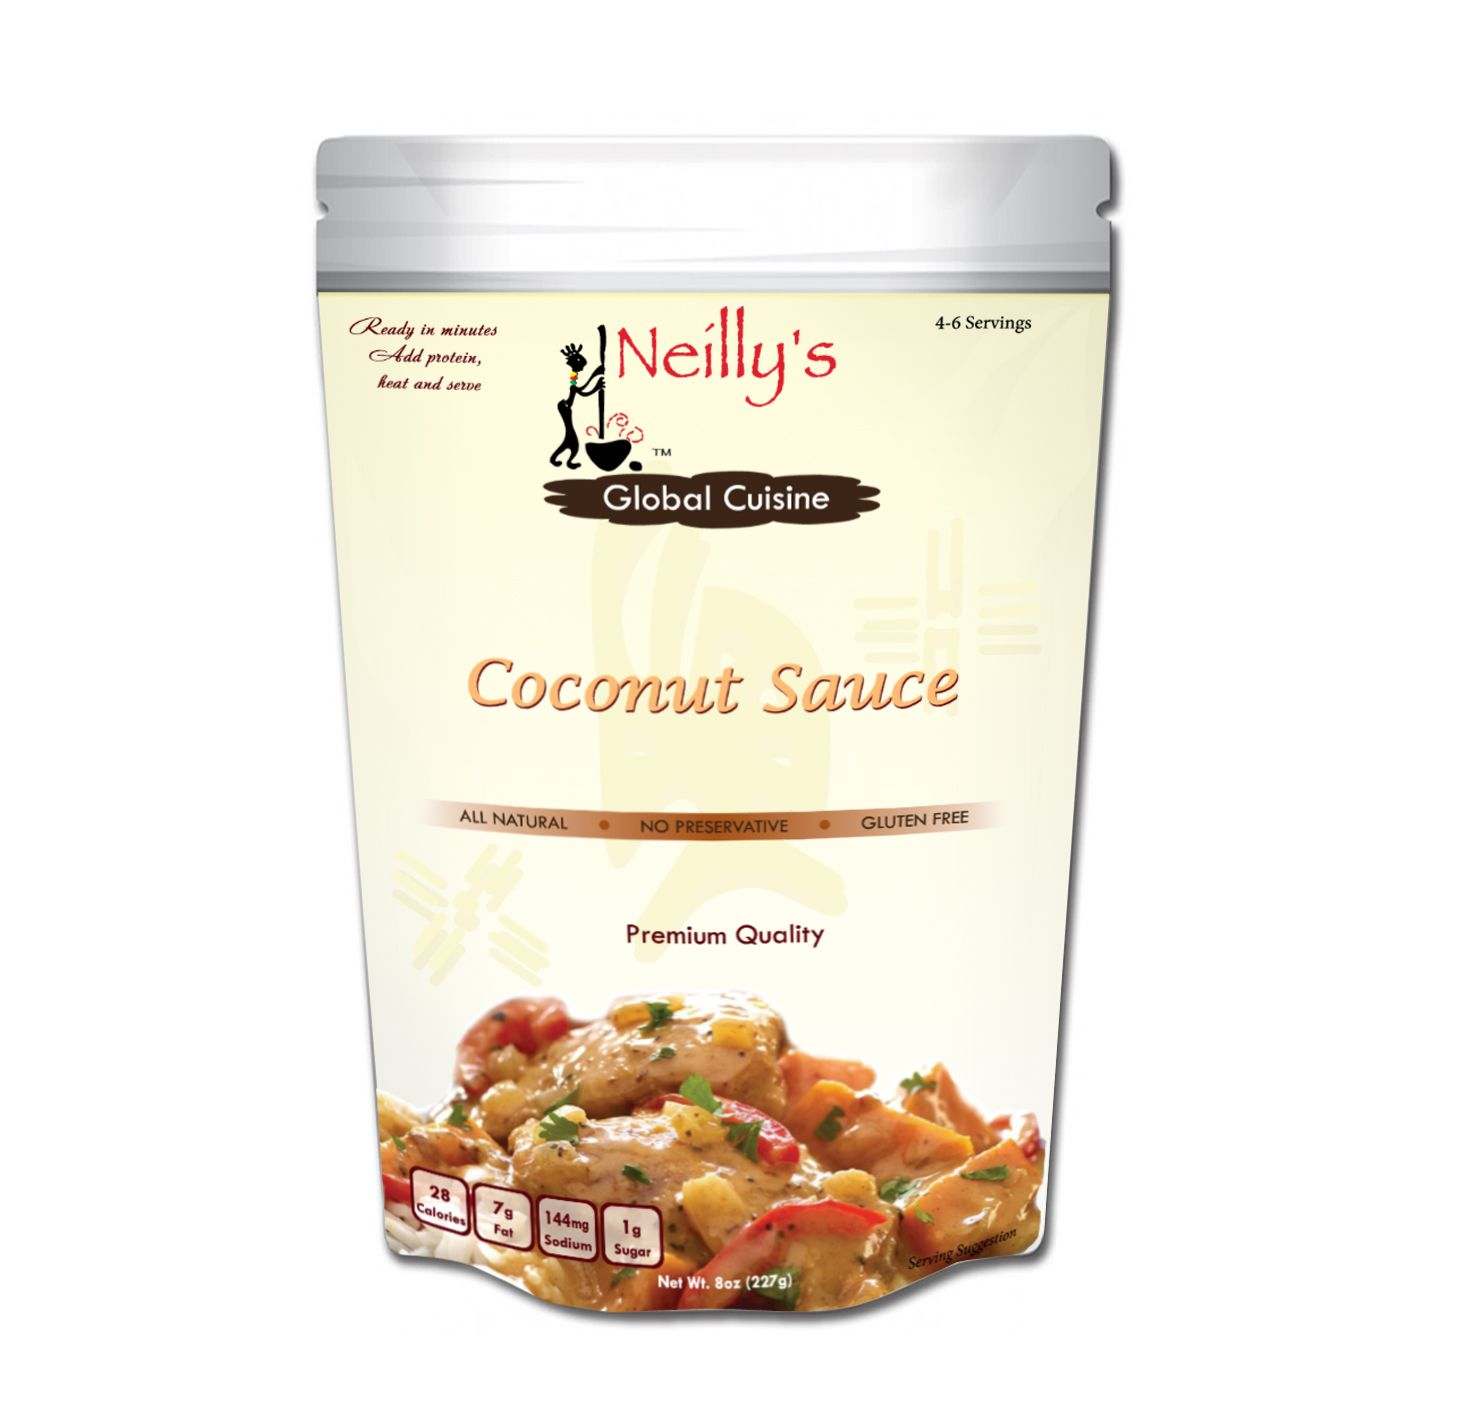 Now available for Purchase Online http://www.neillys.com/grocery/sauce/coconut-sauce/